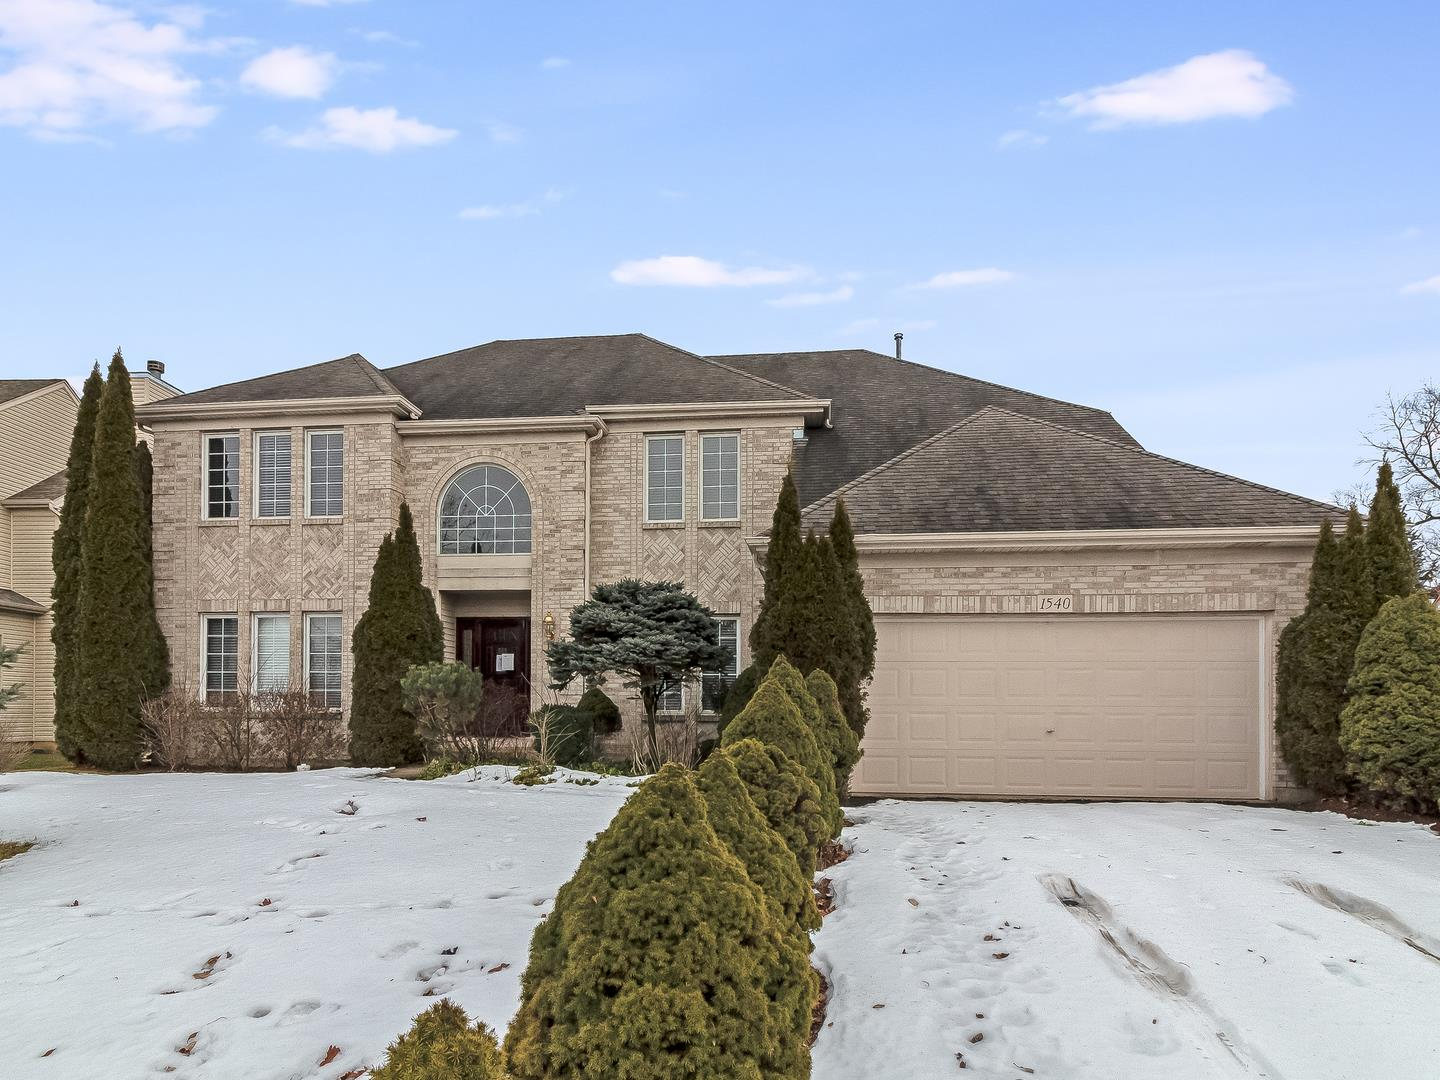 1540 SOUTHRIDGE Trail, Algonquin, IL 60102 - #: 10642307